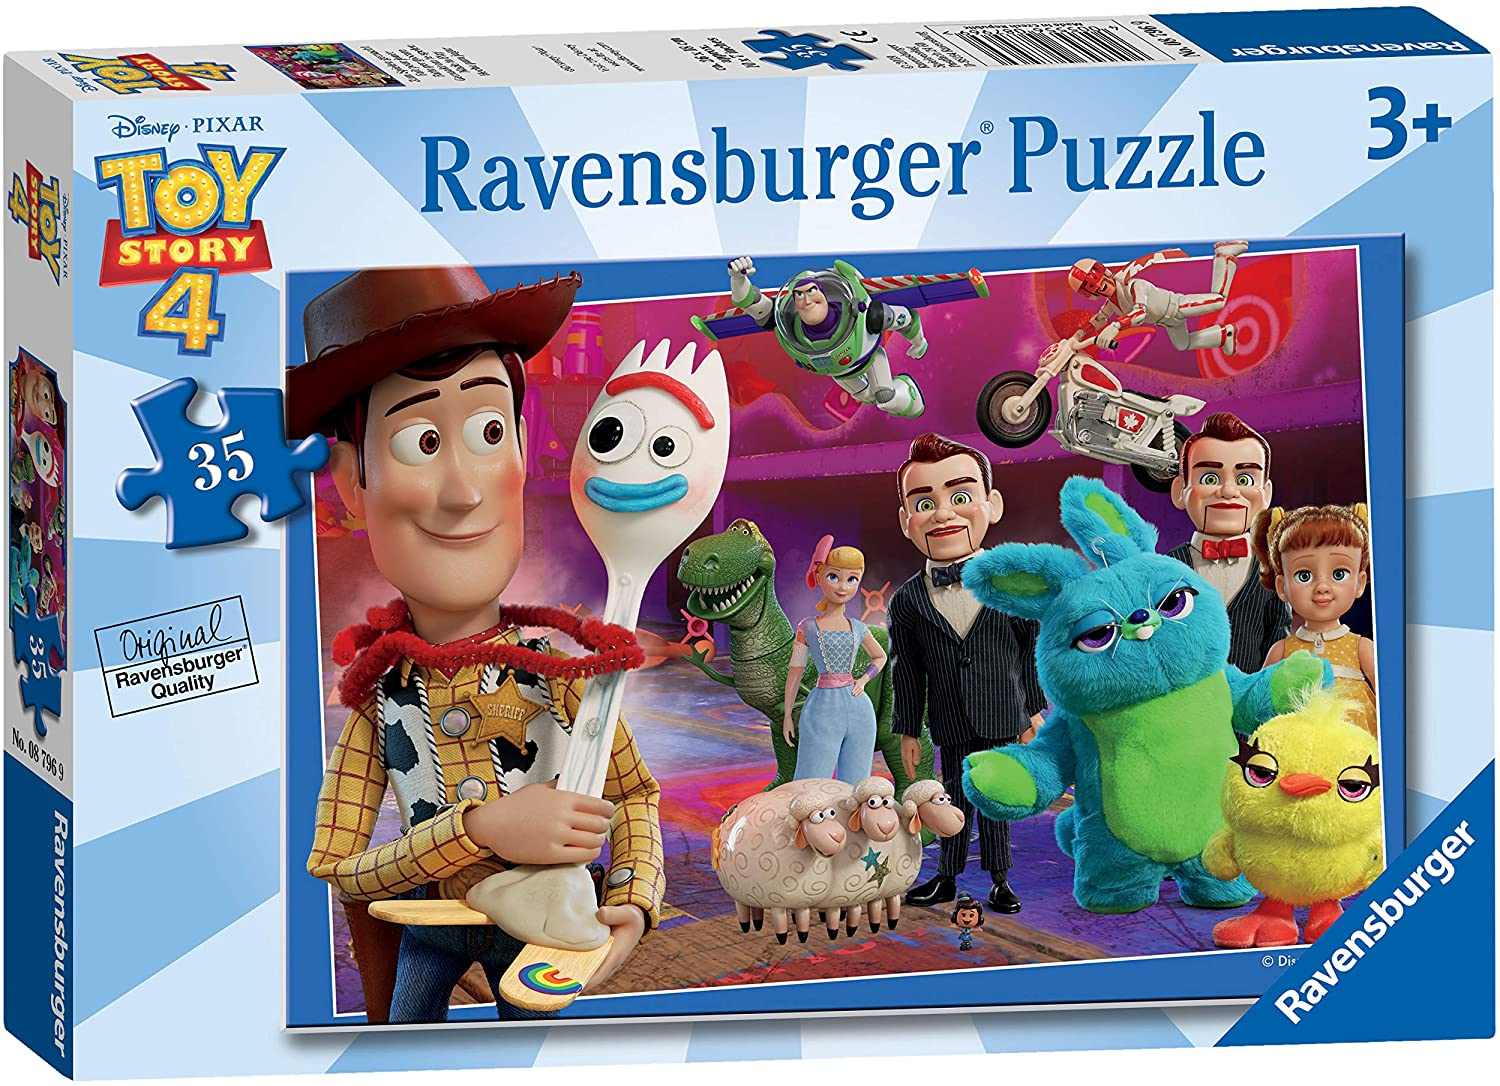 Ravensburger Toy Story 4 ~ Made to play Puzzle 35 pc 3+